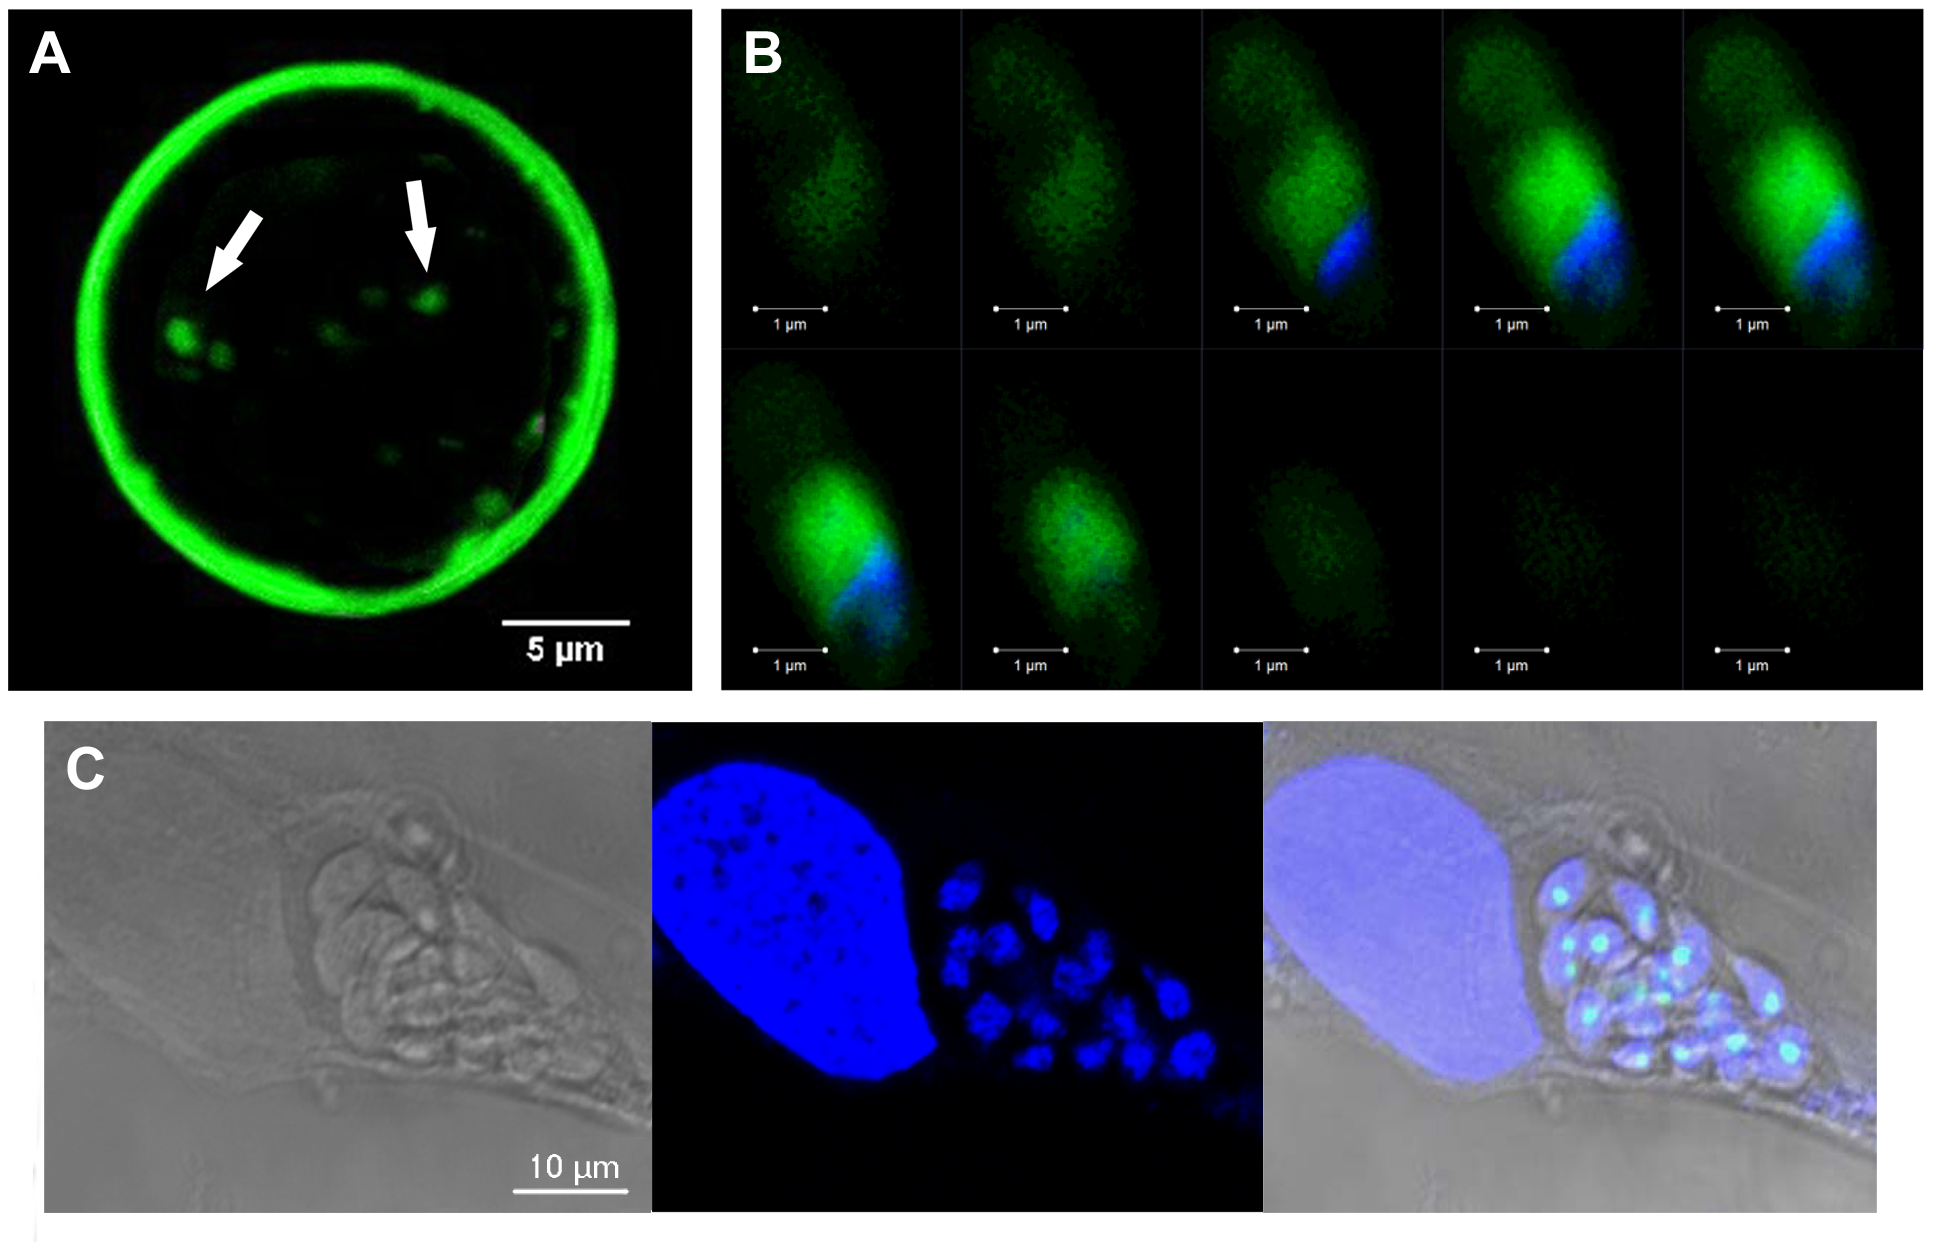 TgNF3 is present exclusively in the cytoplasm of dormant bradyzoites and relocates in the nucleolus during bradyzoite to tachyzoite conversion.